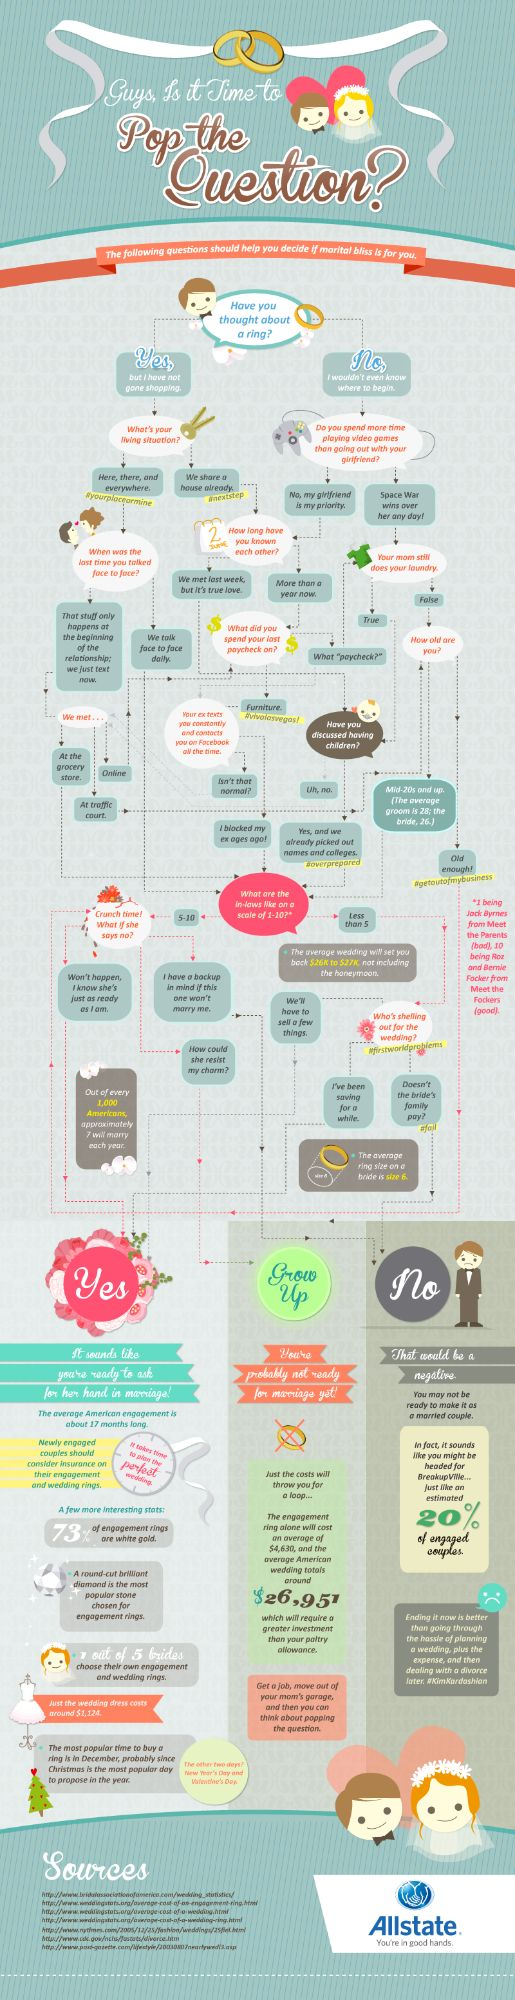 pop the question infographic